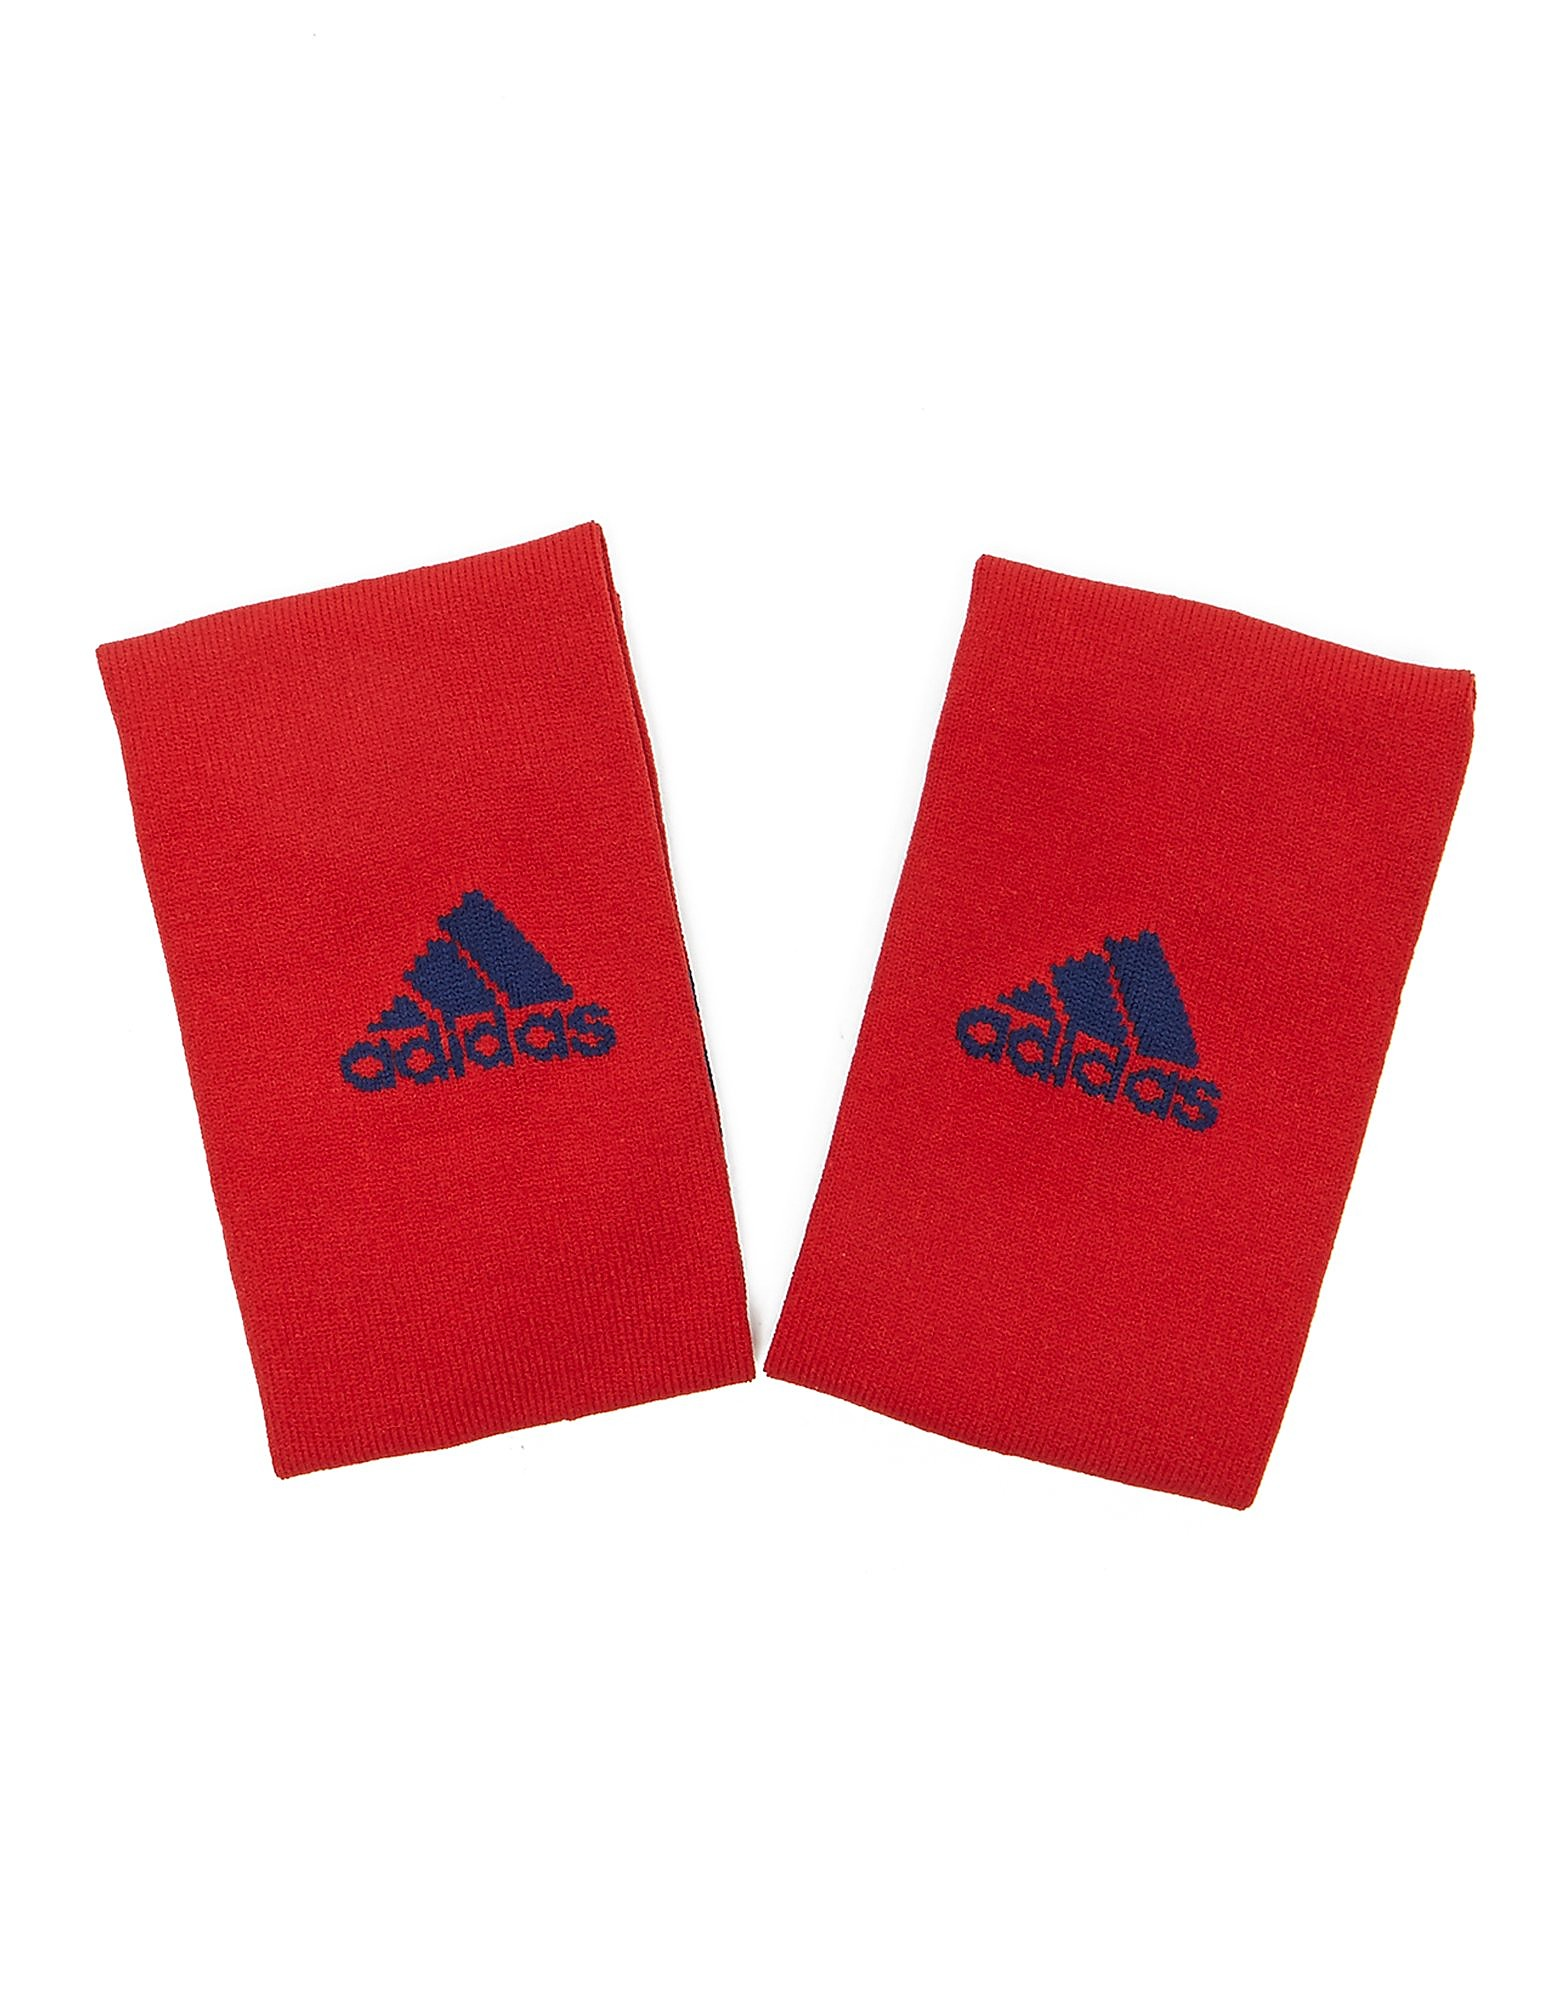 adidas West Bromwich Albion 2017/18 Away Socks